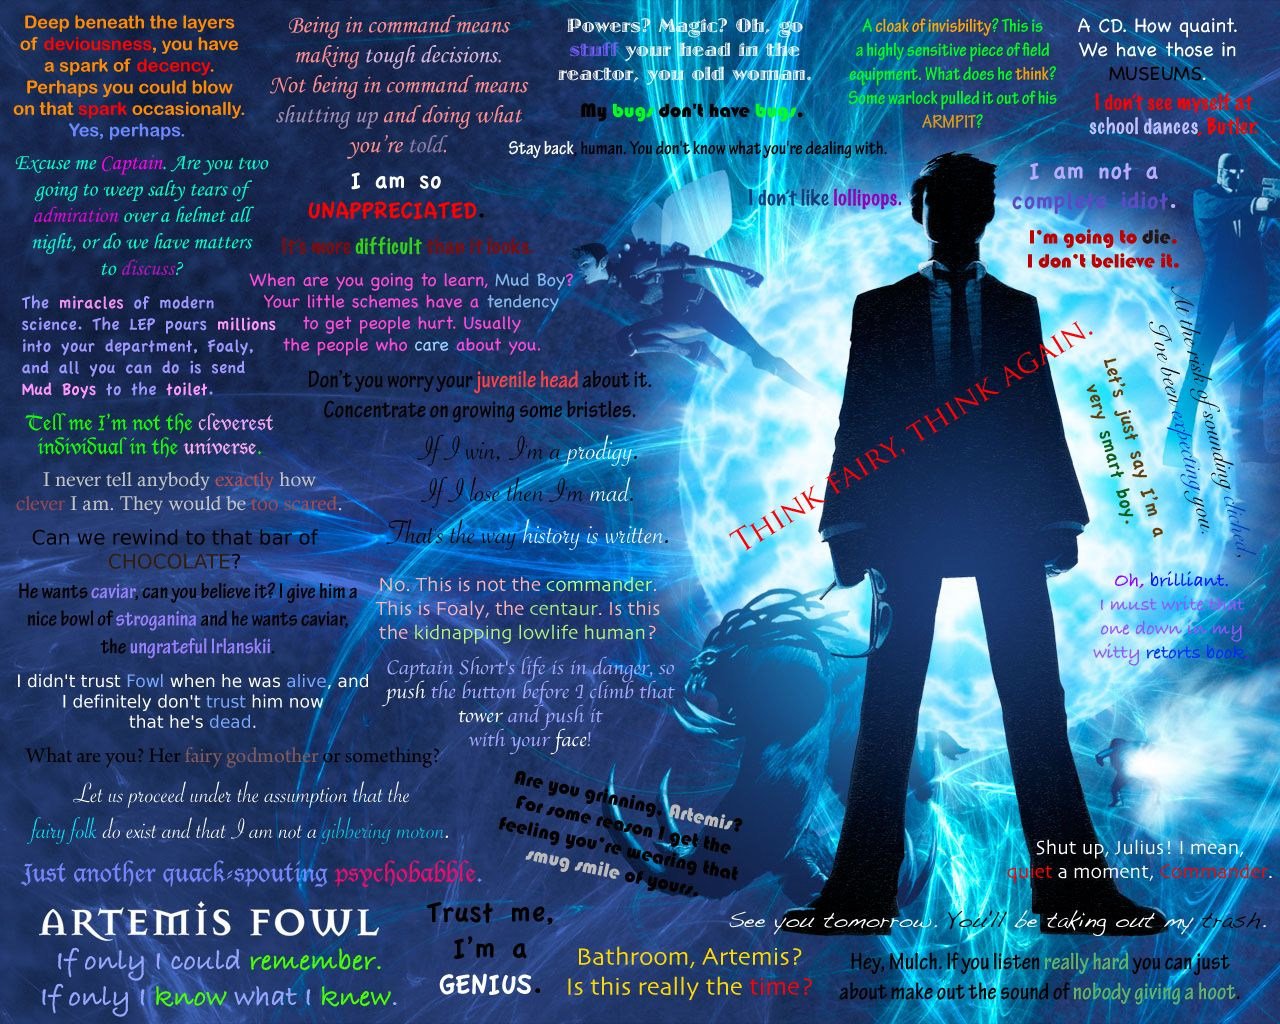 Artemis Libros Artemis Fowl Desktop Background Am I Obsessed If I Know All Of